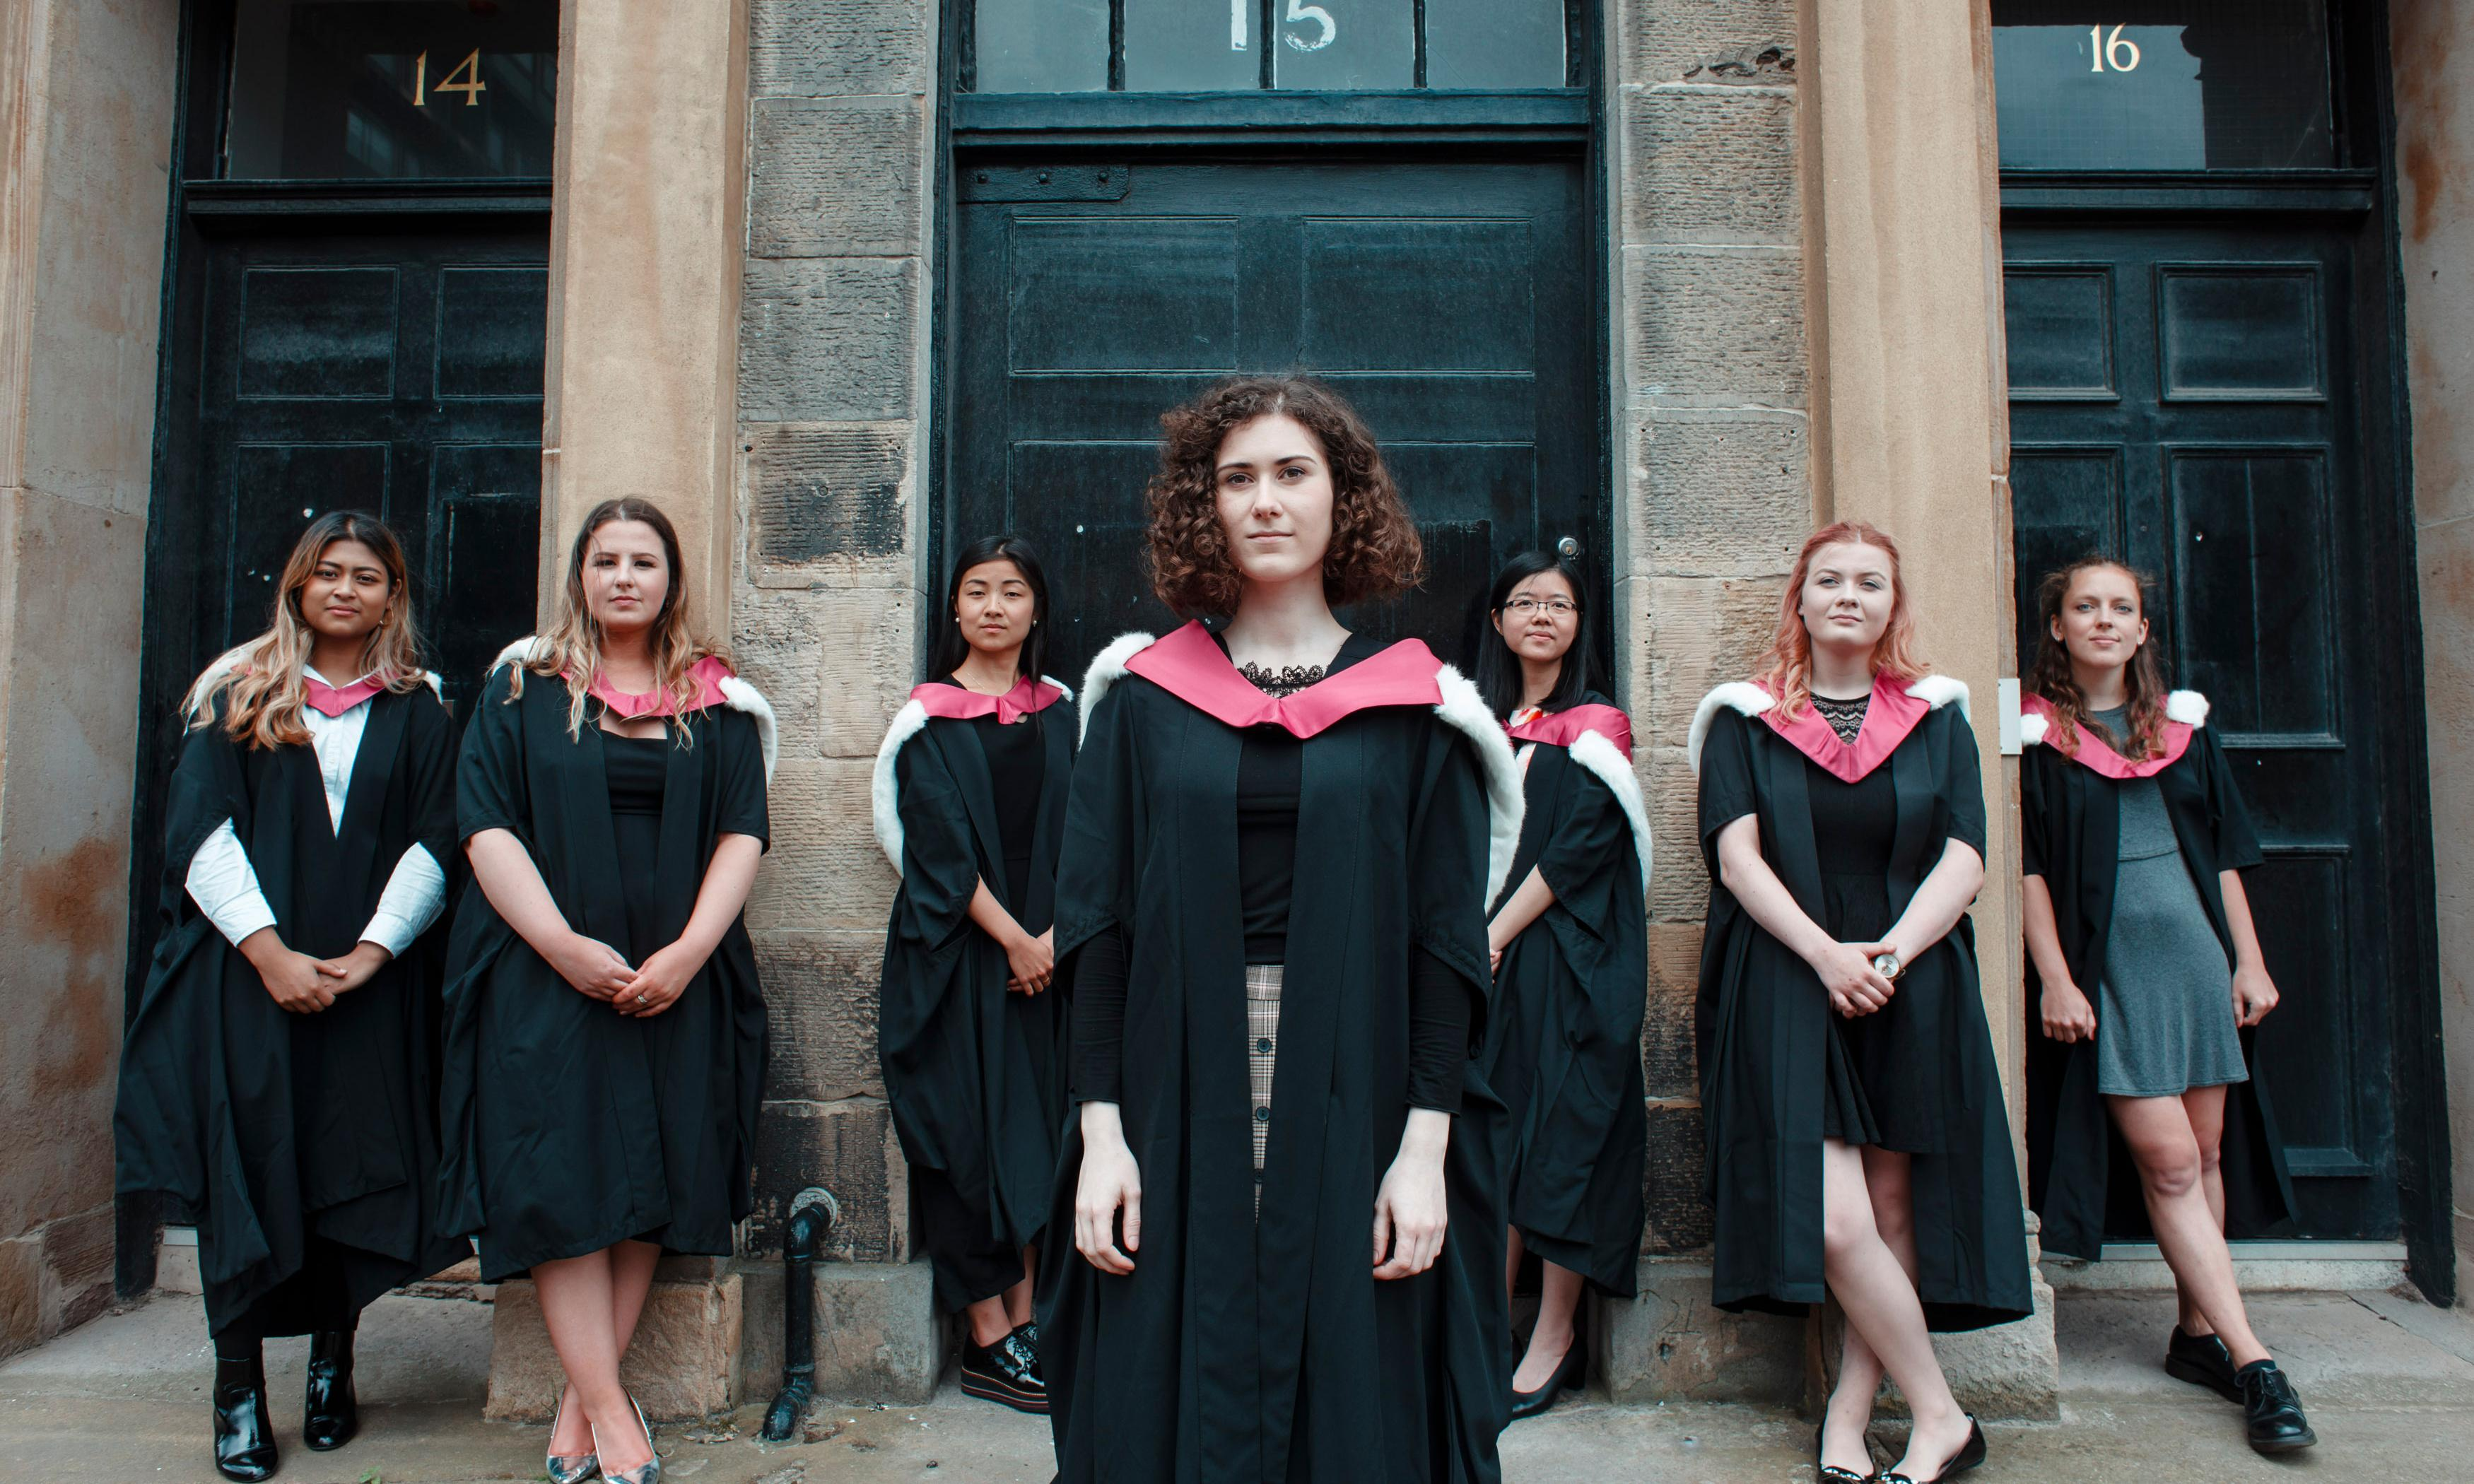 Edinburgh gives female medical students their degrees – 150 years late